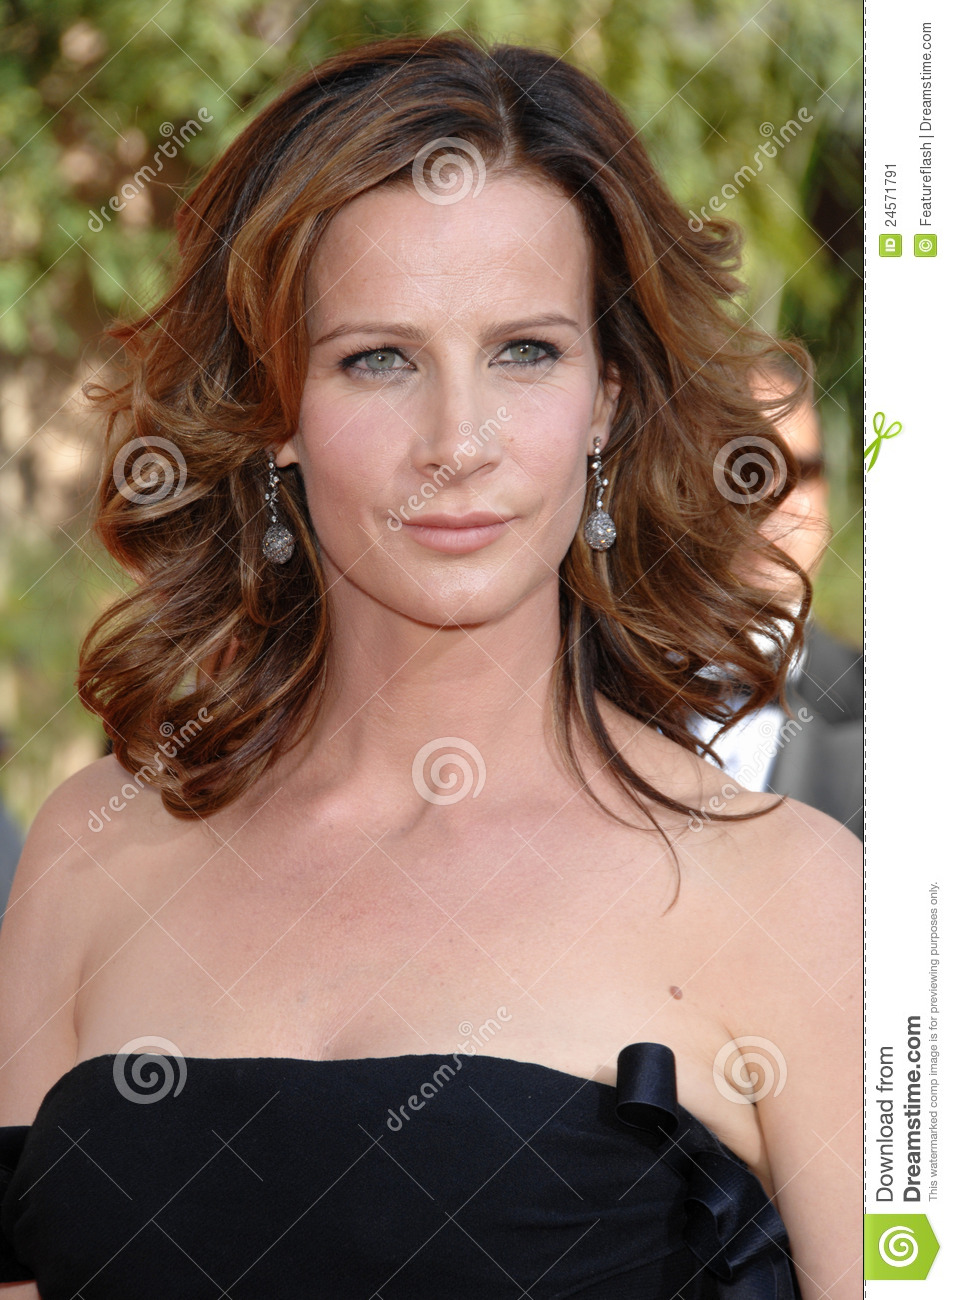 rachel griffiths husbandrachel griffiths net worth, rachel griffiths instagram, rachel griffiths imdb, rachel griffiths, rachel griffiths facebook, rachel griffiths muriel wedding, rachel griffiths actress, rachel griffiths husband, rachel griffiths measurements, rachel griffiths interview, rachel griffiths twitter